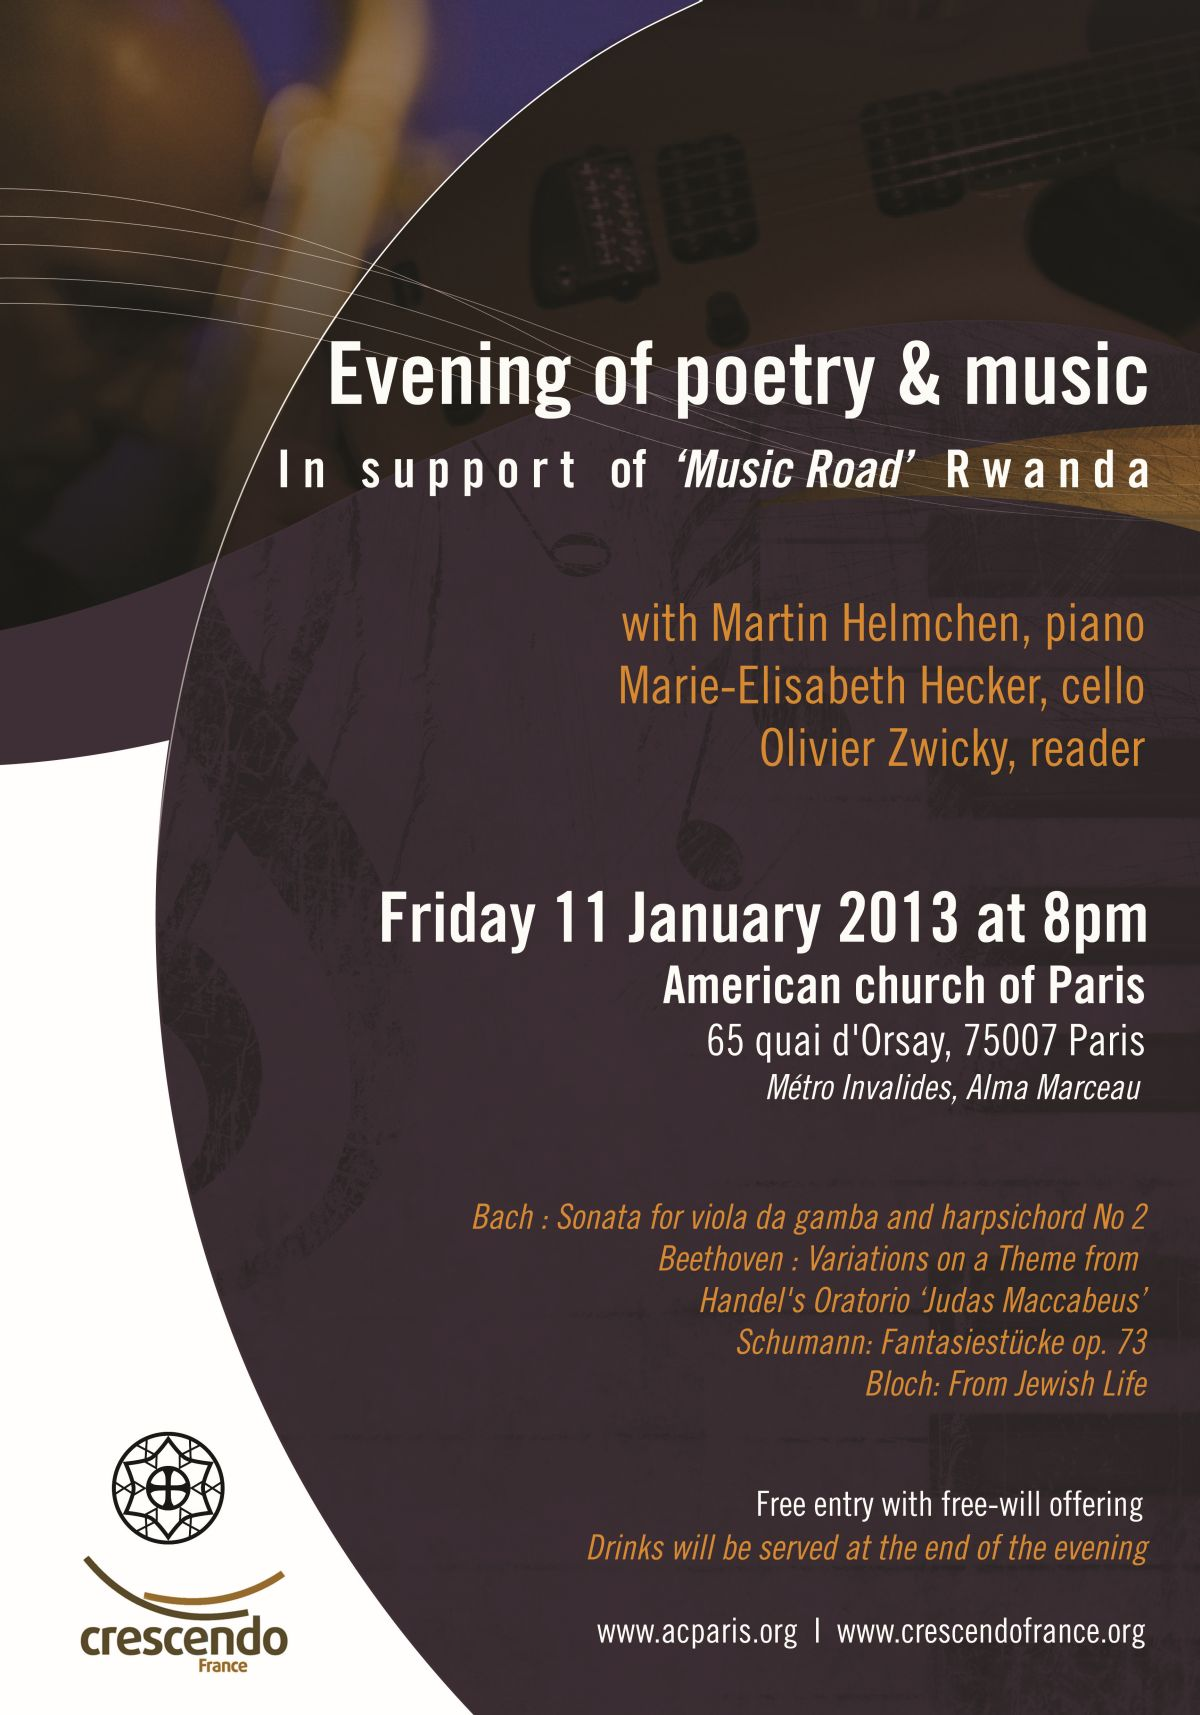 Crescendo — An Evening of Poetry and Music - 11 January